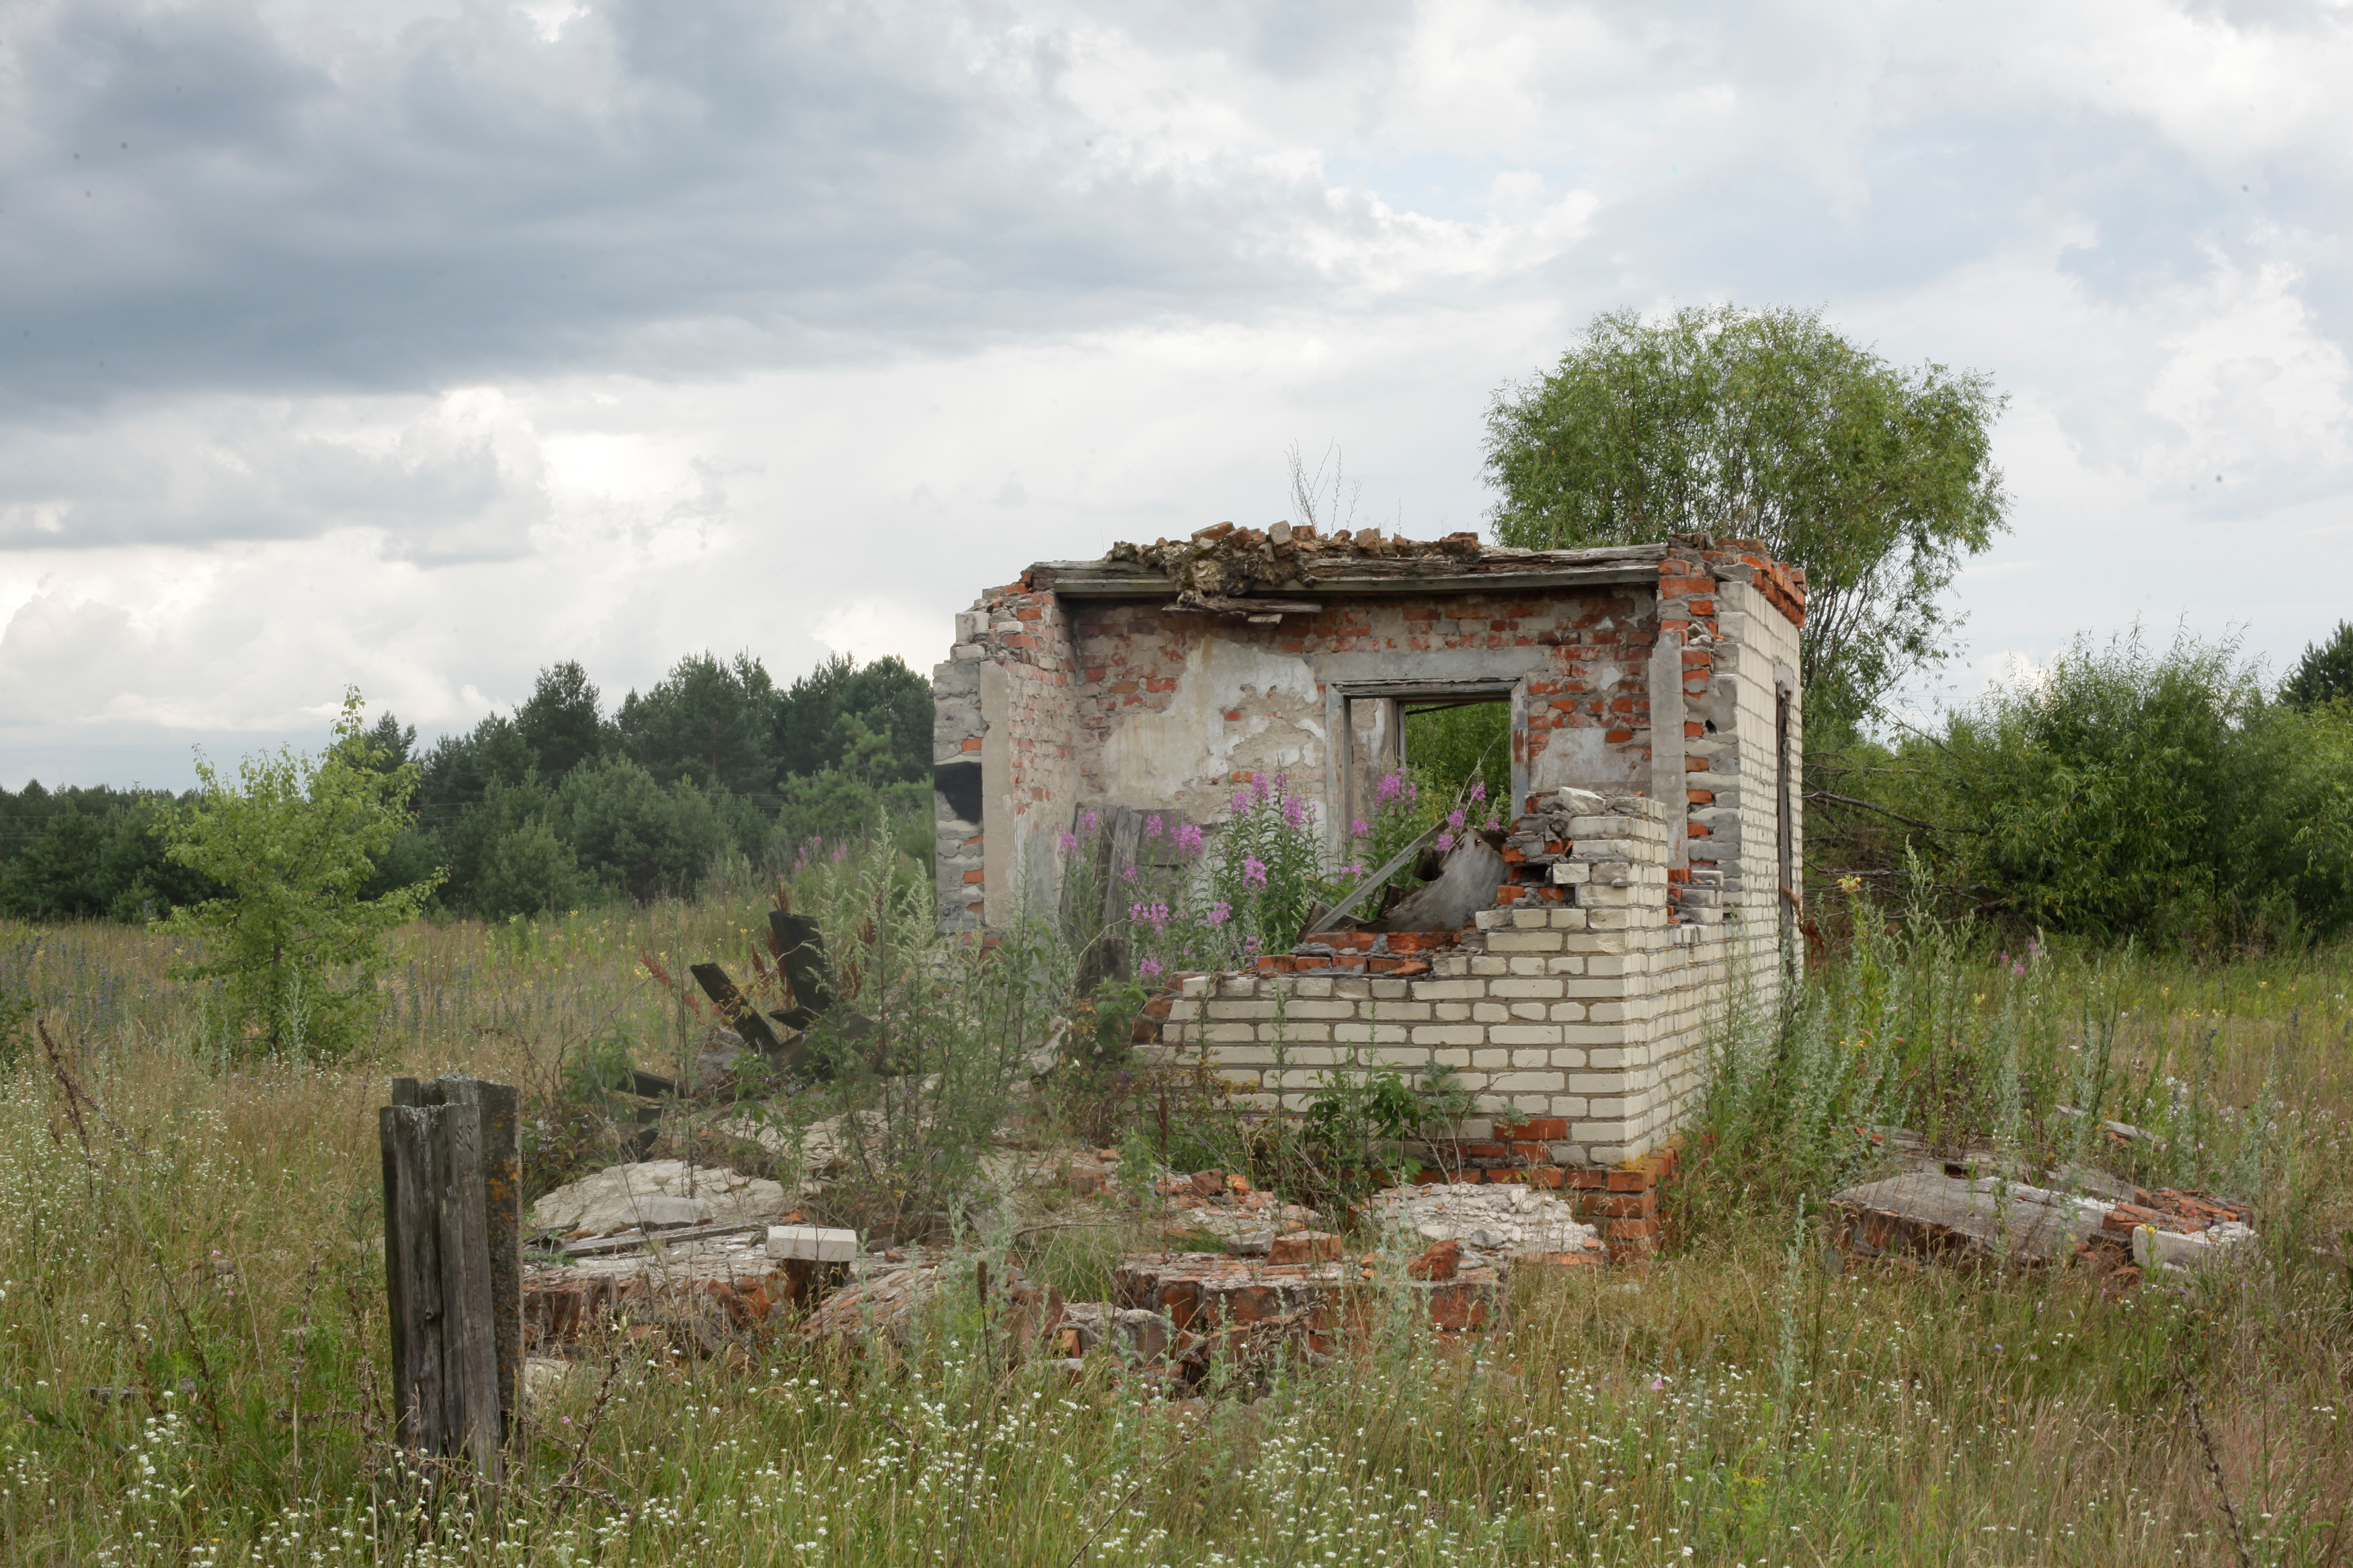 A decayed house in Chernobyl, Belarus on July 9, 2014.